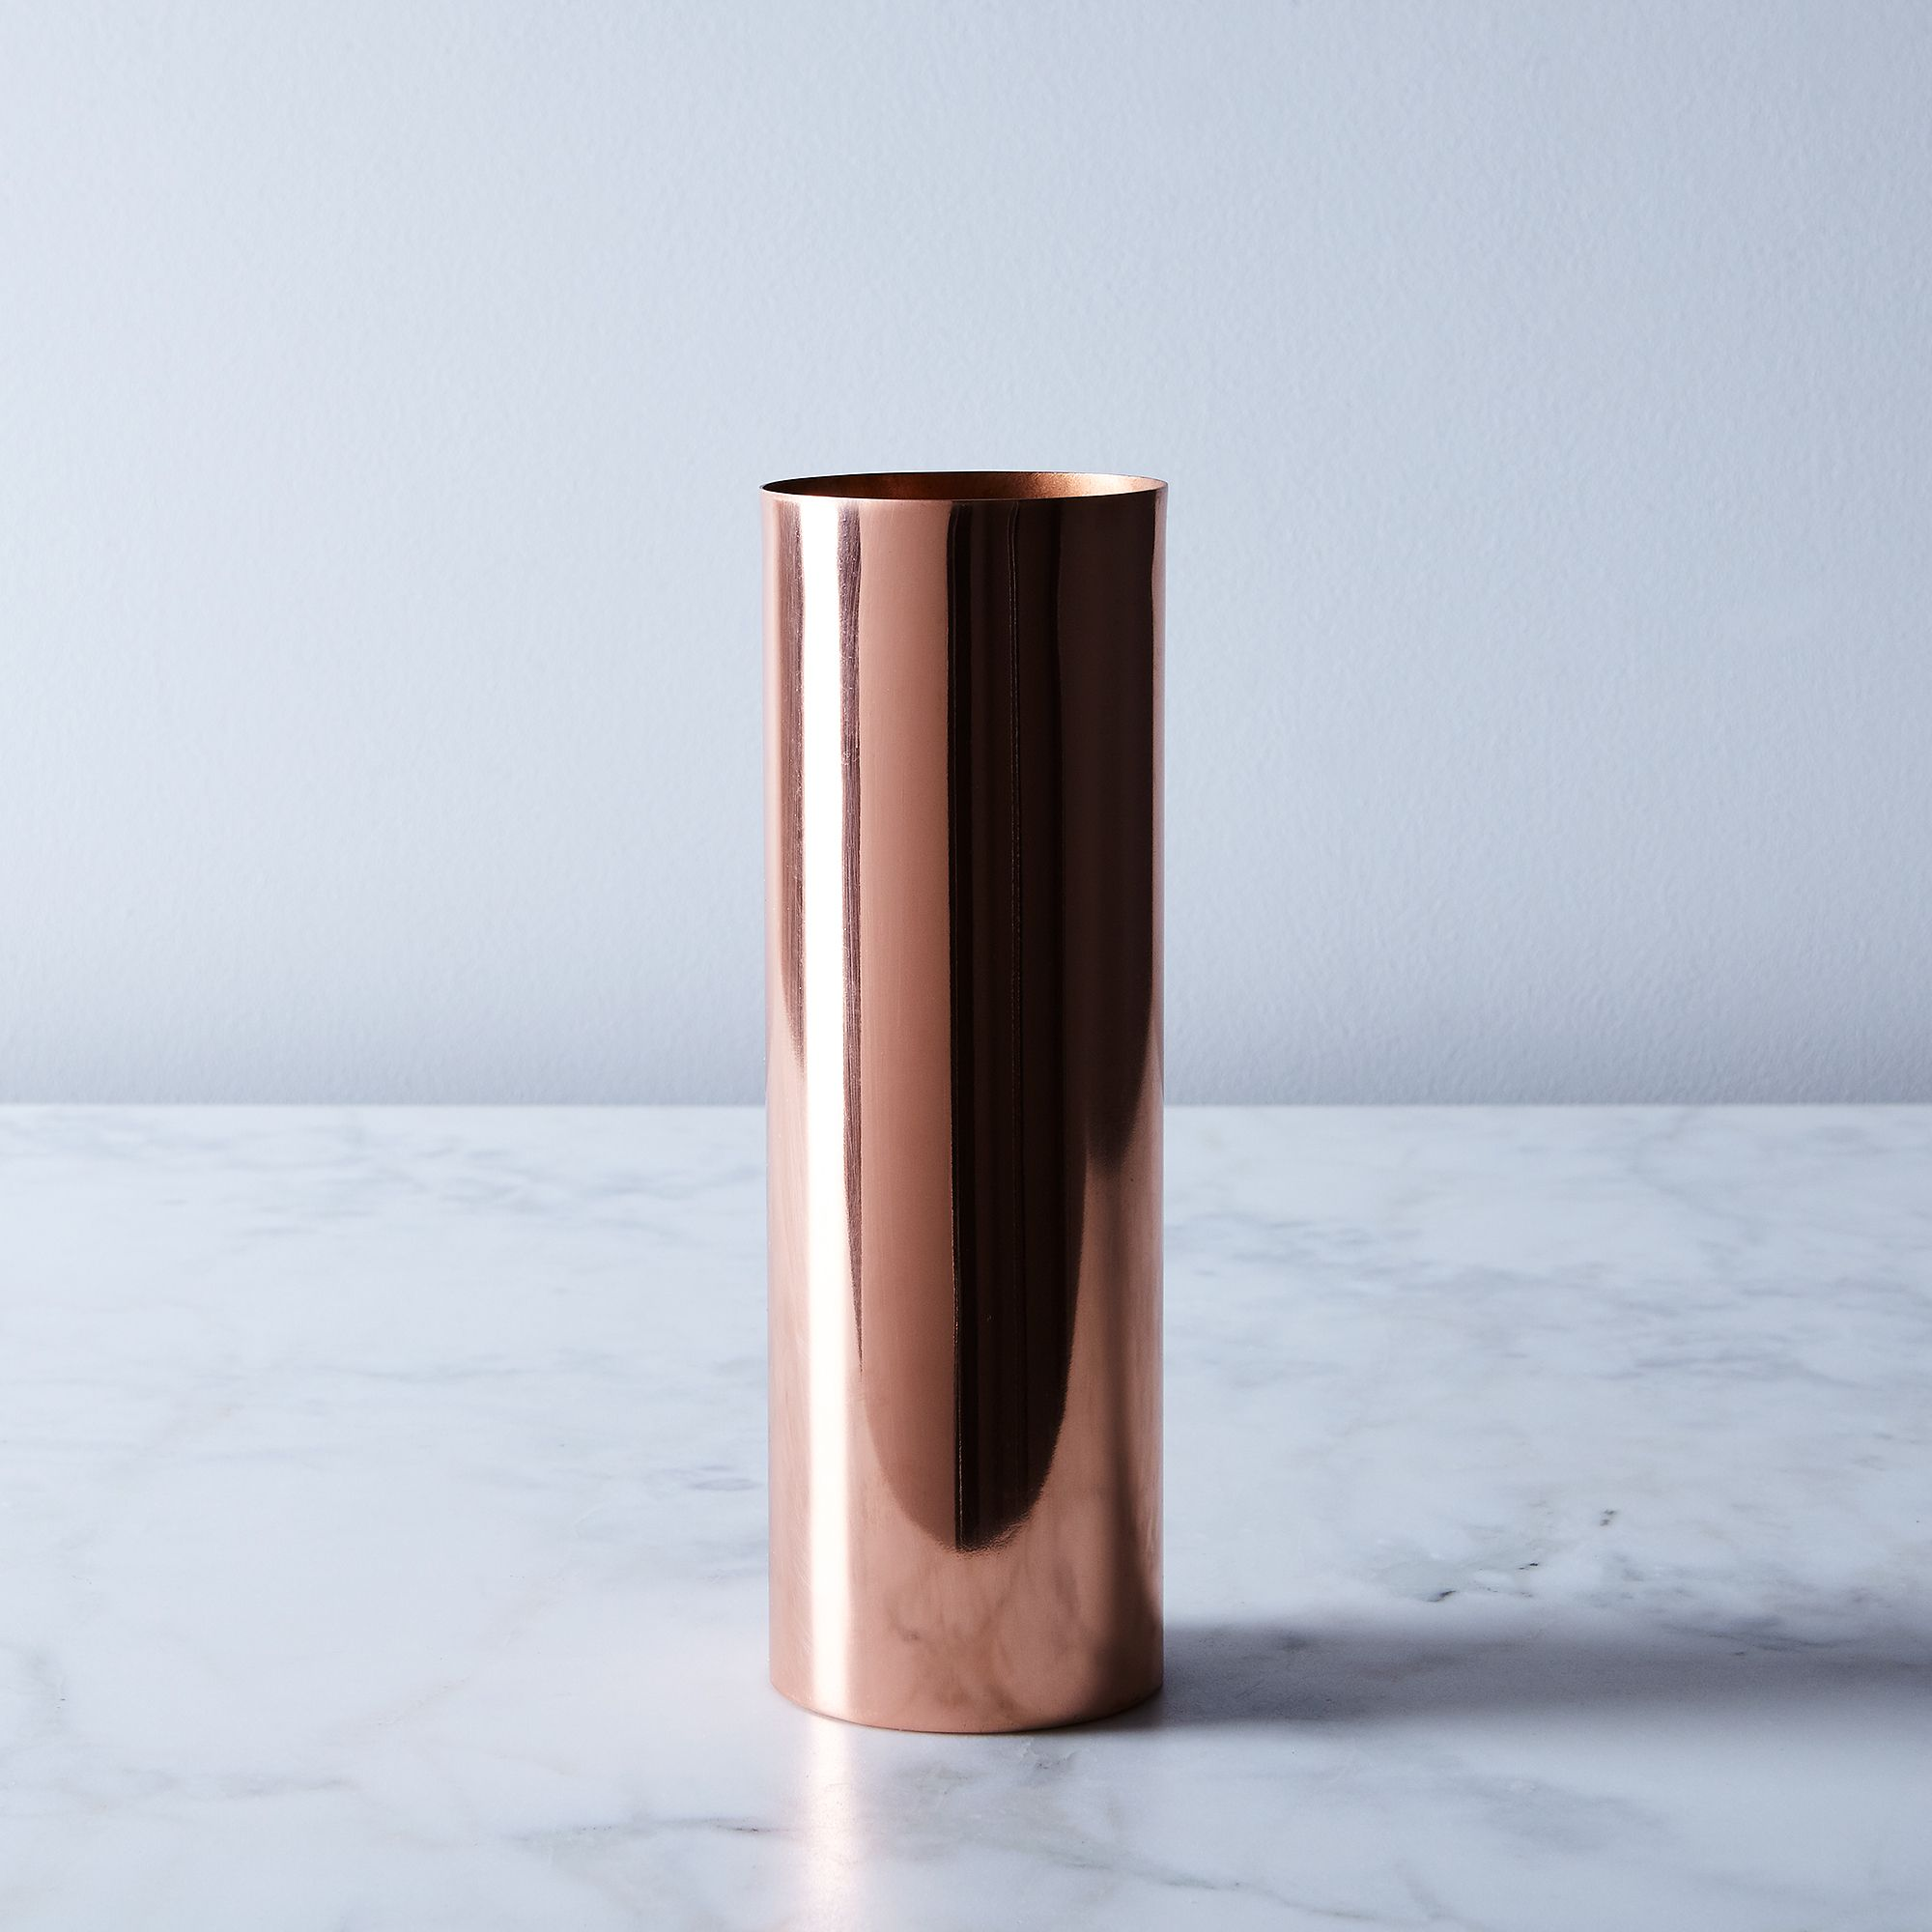 82b28045 d5aa 4d27 9ea7 a0d04a5e674f  2017 0907 hawkins new york copper and brass louise vase copper medium silo rocky luten 027